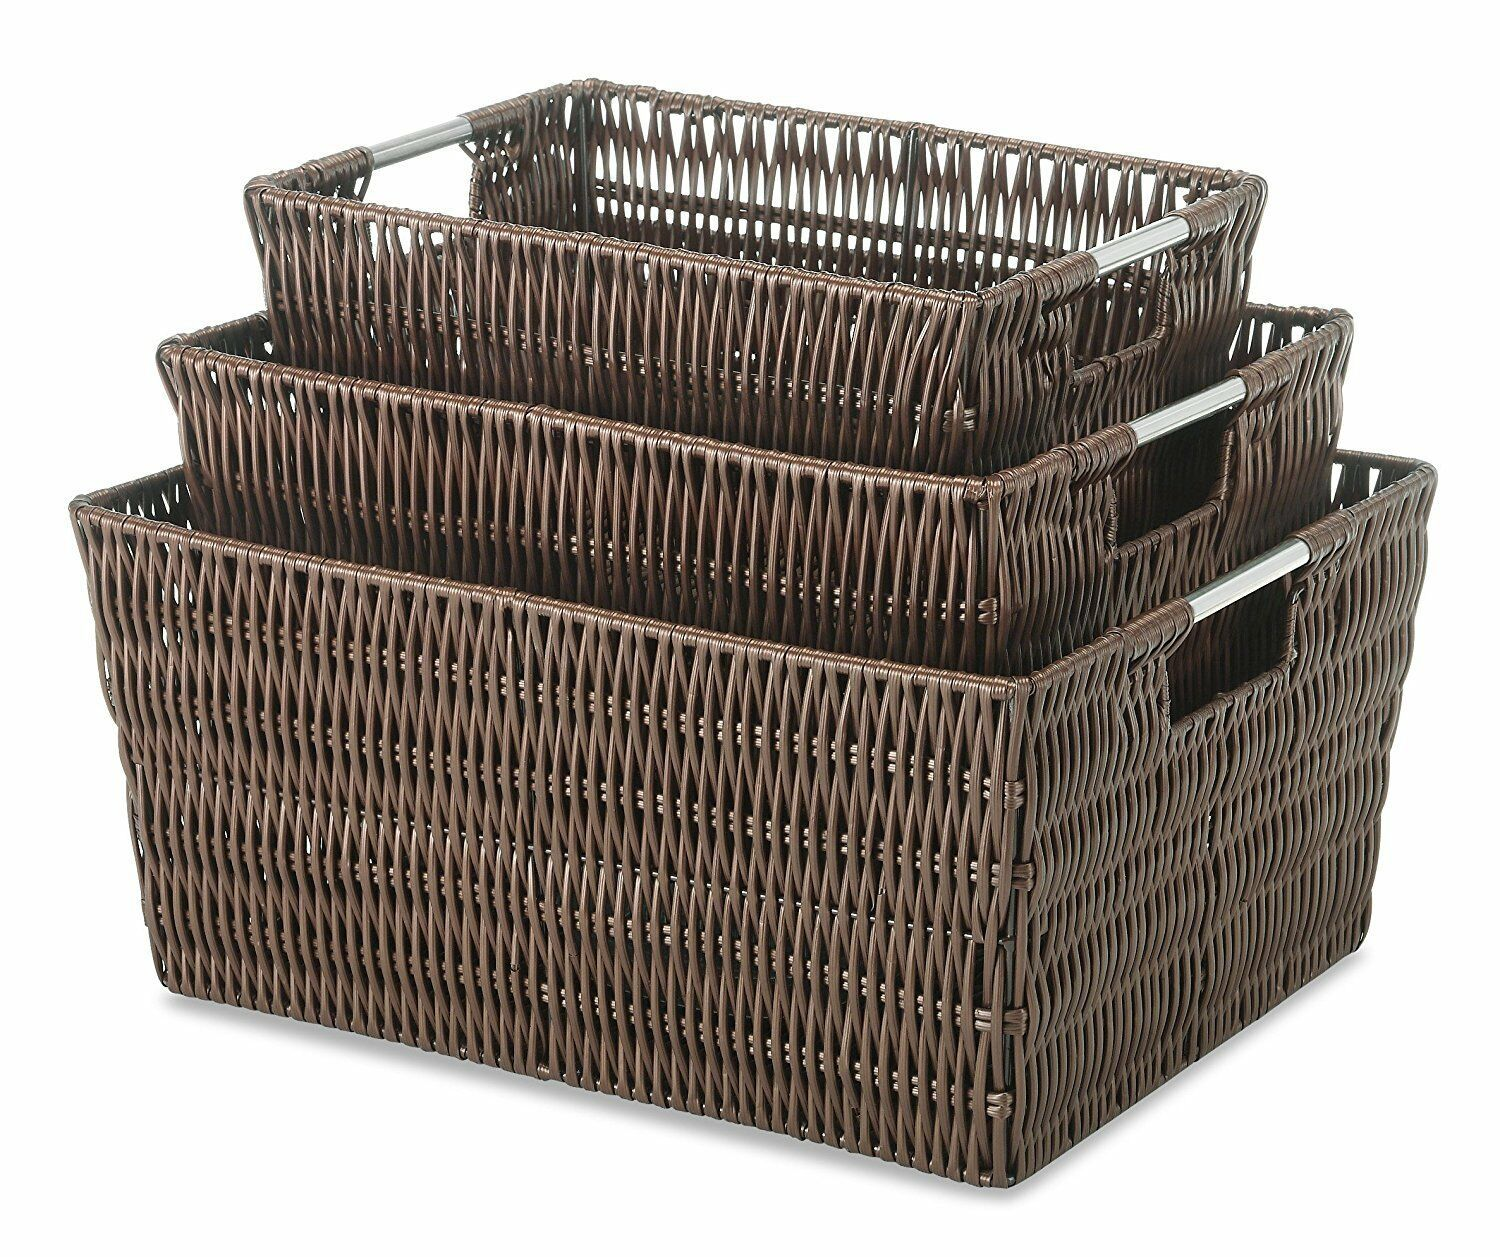 New Rattique Organizer Home Office Organization Bins Storage Baskets Closet